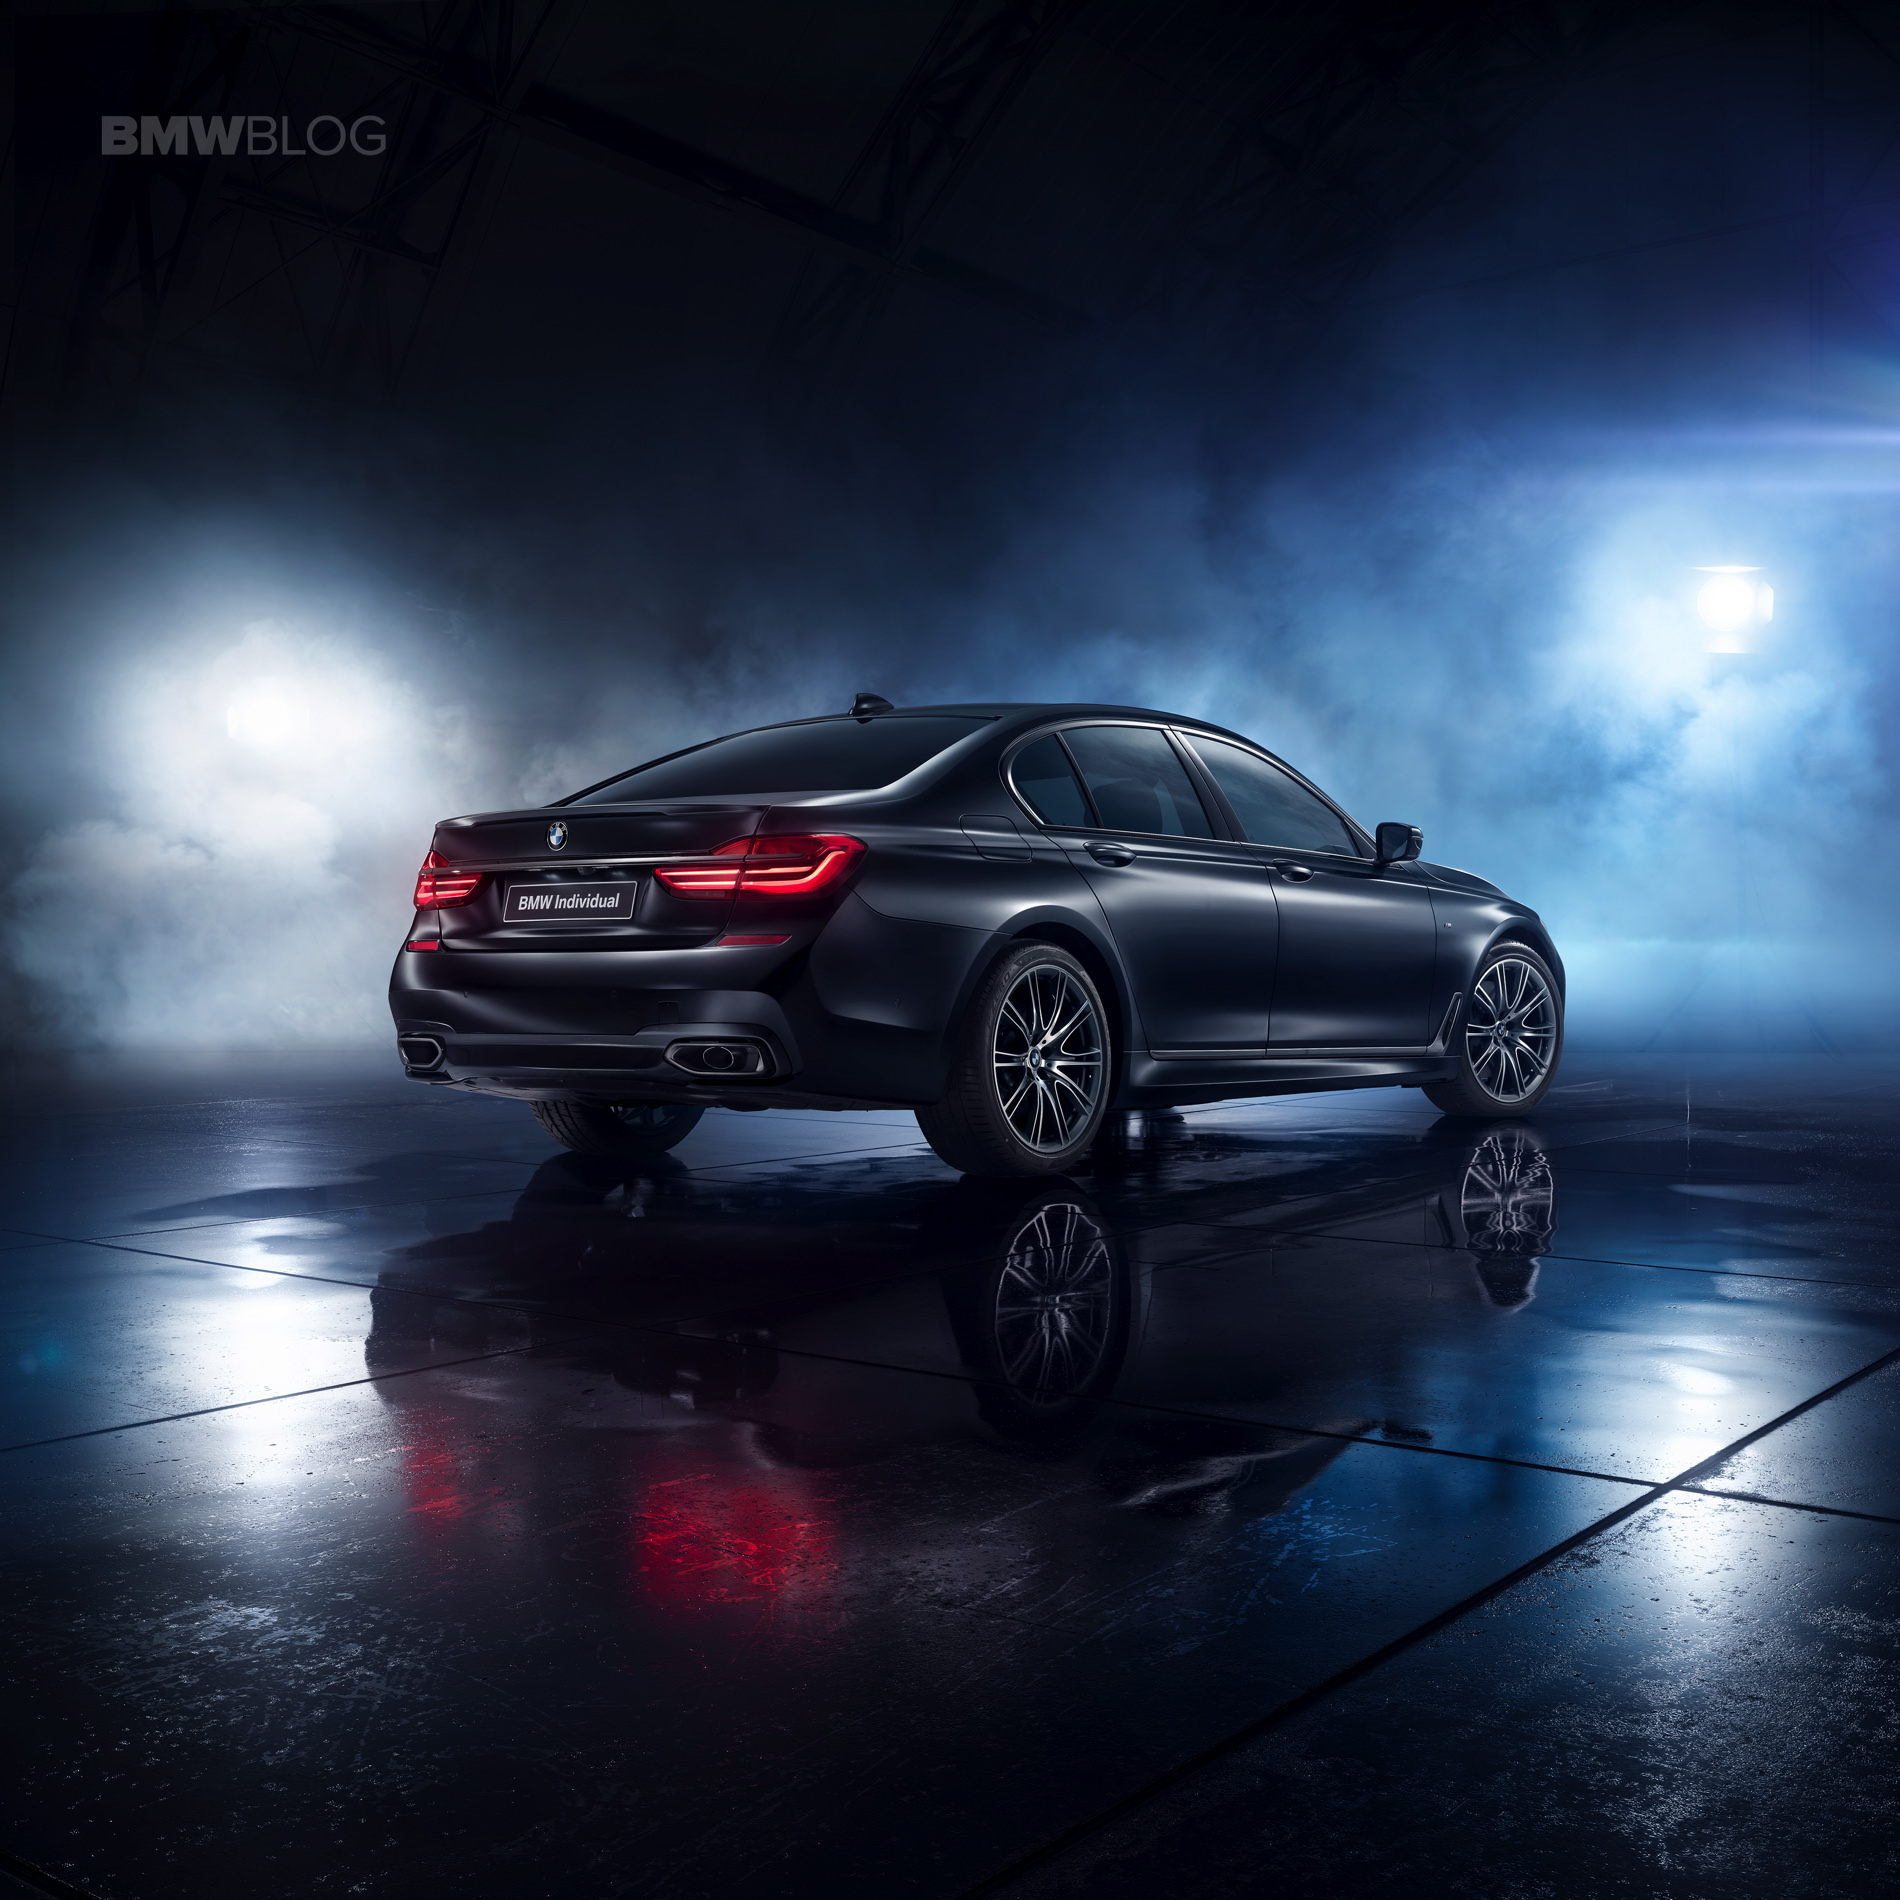 The Bmw 7 Series Individual Edition Black Ice